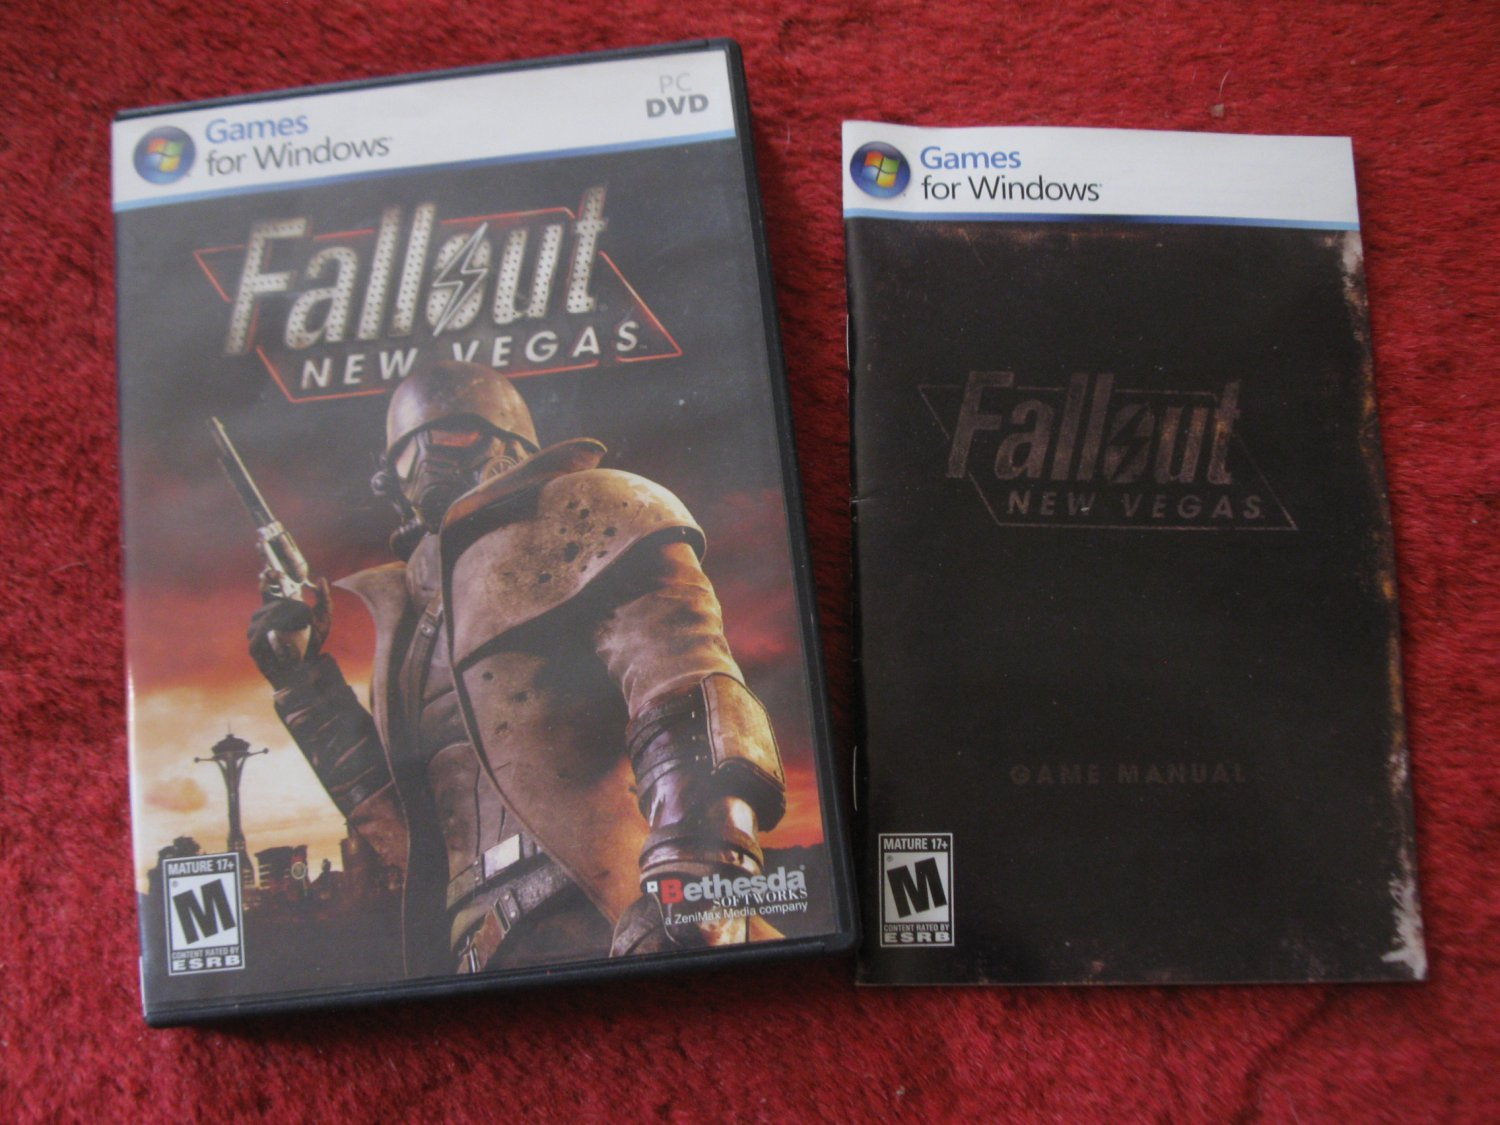 2010 Fallout New Vegas empty Case w/ Booklet & Cover Art- PC Video Game Instruction Booklet